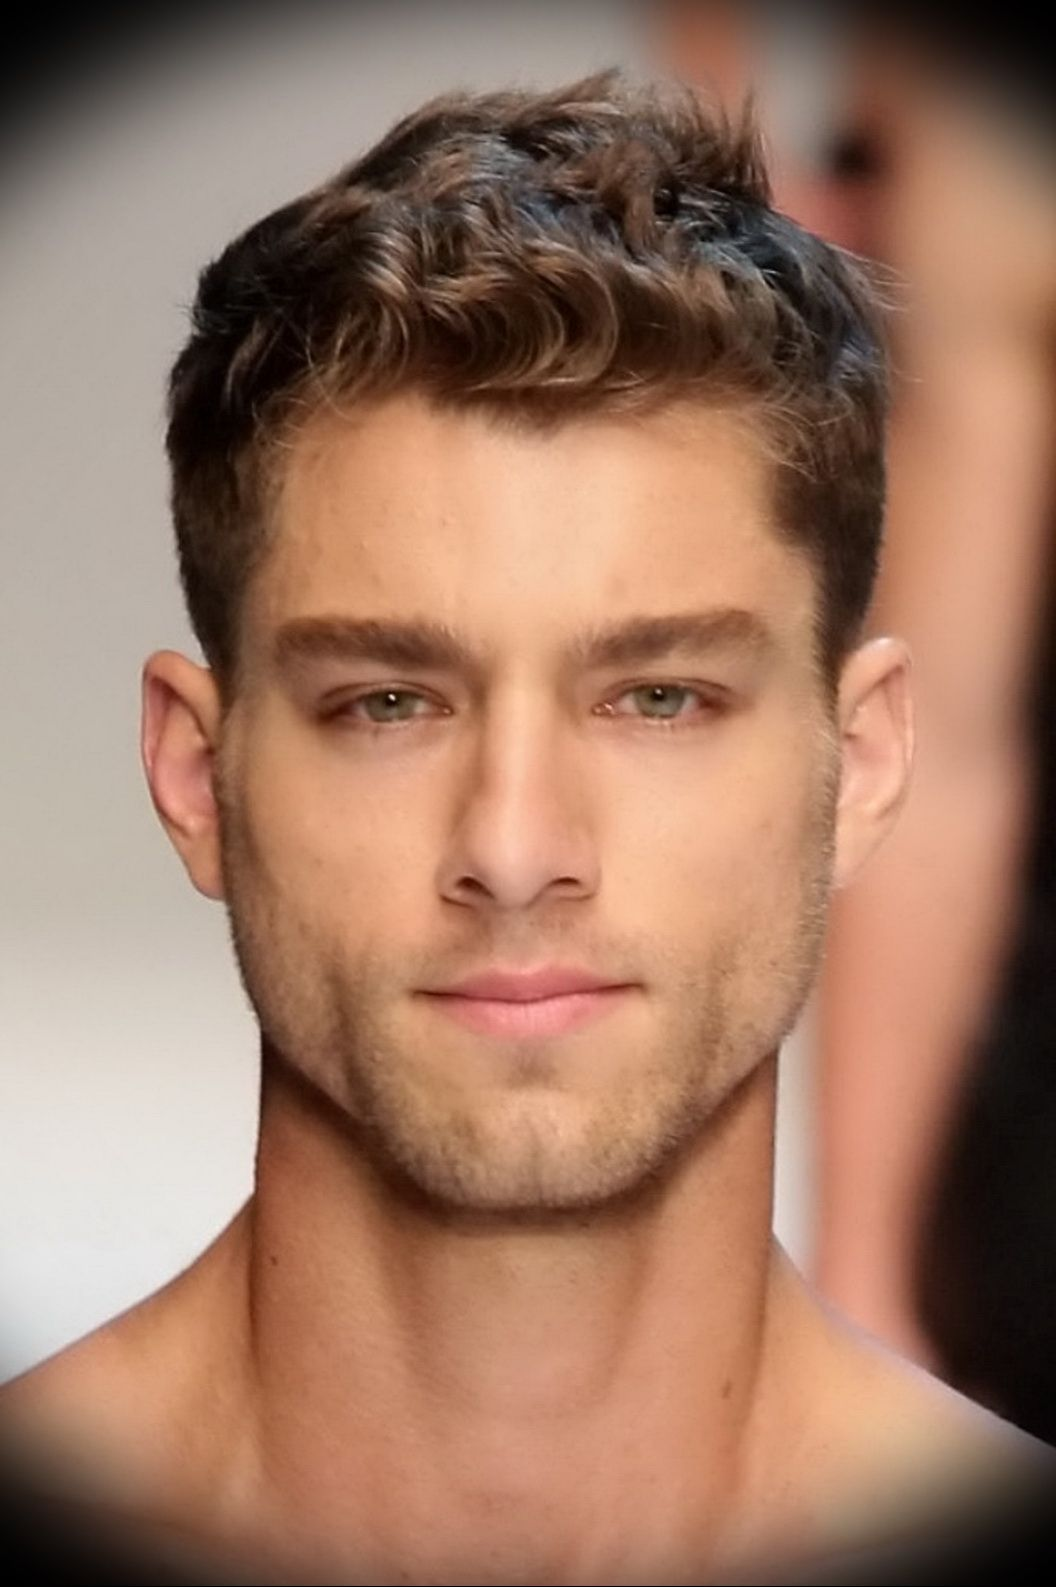 Hairstyles For Men With Long Curly Hair Men S Medium Hairstyles And Also Men S Long Hairstyle Mens Hairstyles Thick Hair Curly Hair Men Mens Hairstyles Curly